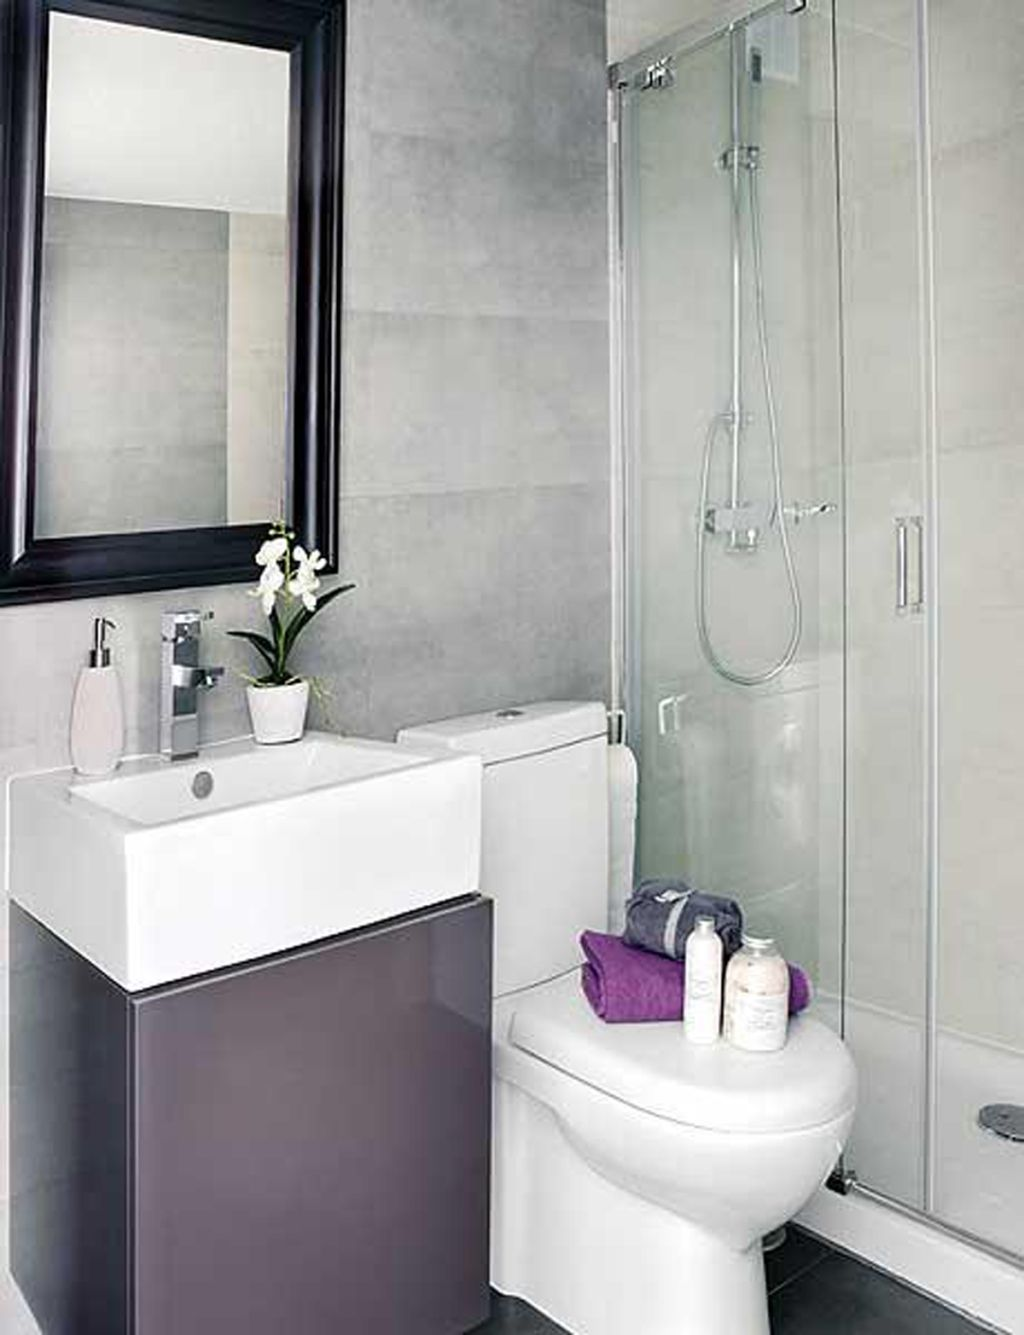 Bathroom Ideas Houzz Unique Small Bathroom Design In Malaysia  Httpwwwhouzzclubsmall Decorating Design